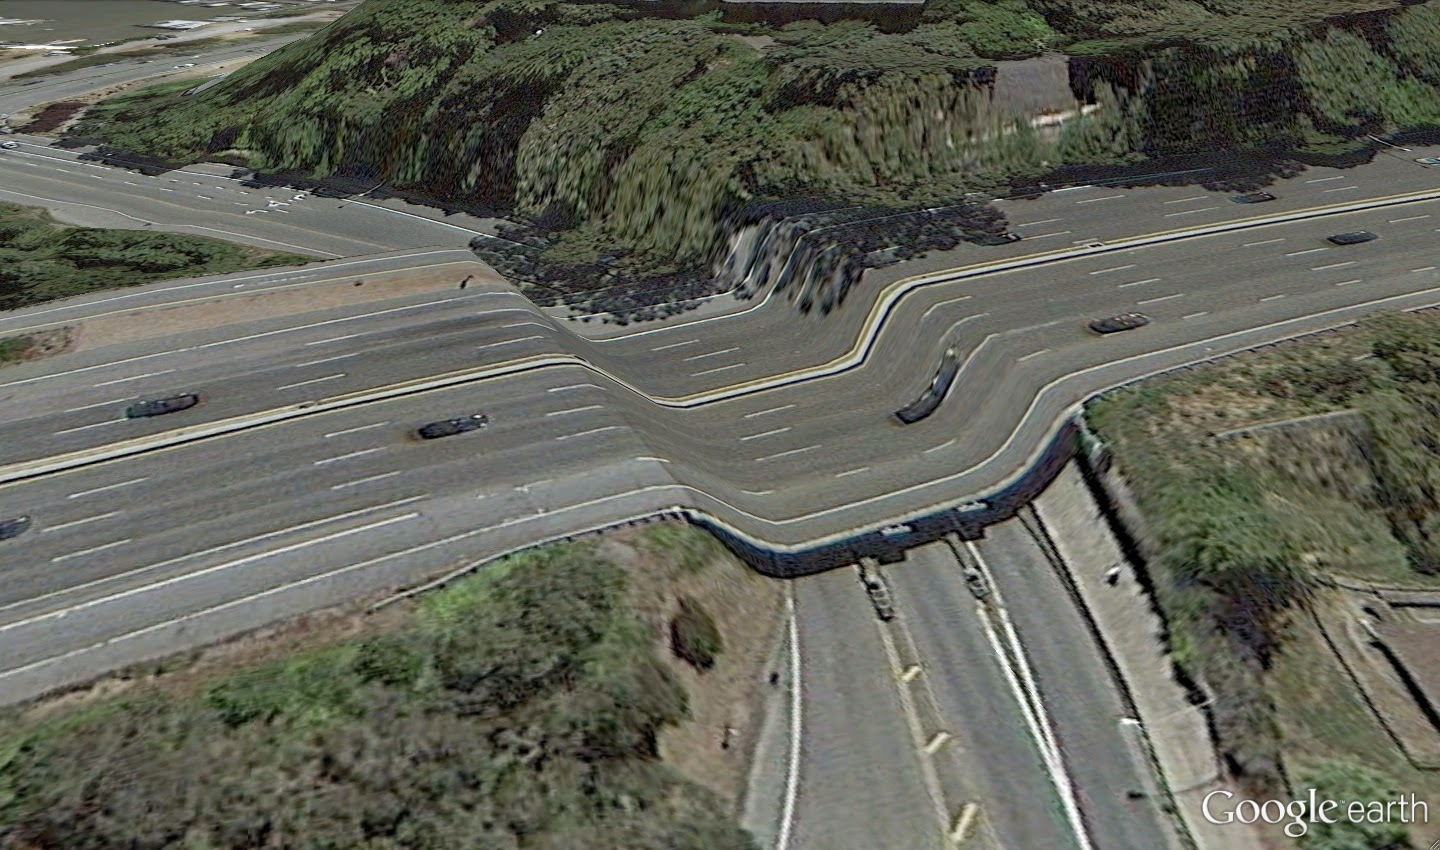 19-Sf1-Clement-Valla-Postcards-From-Google-Earth-www-designstack-co